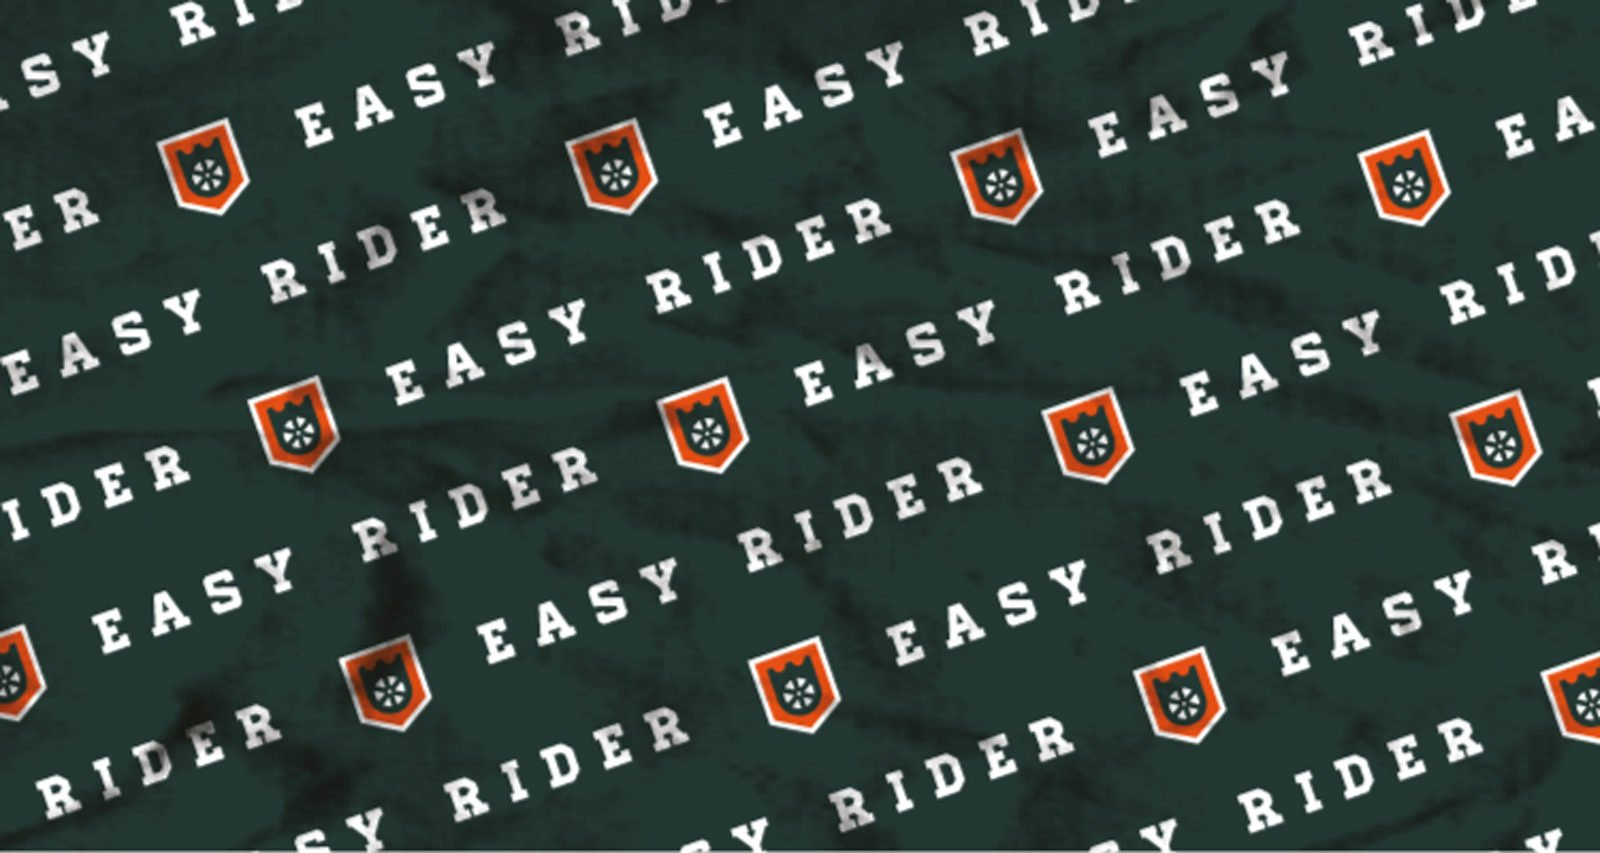 An Identity for Easy Rider Road Tour By Bullhorn Creative